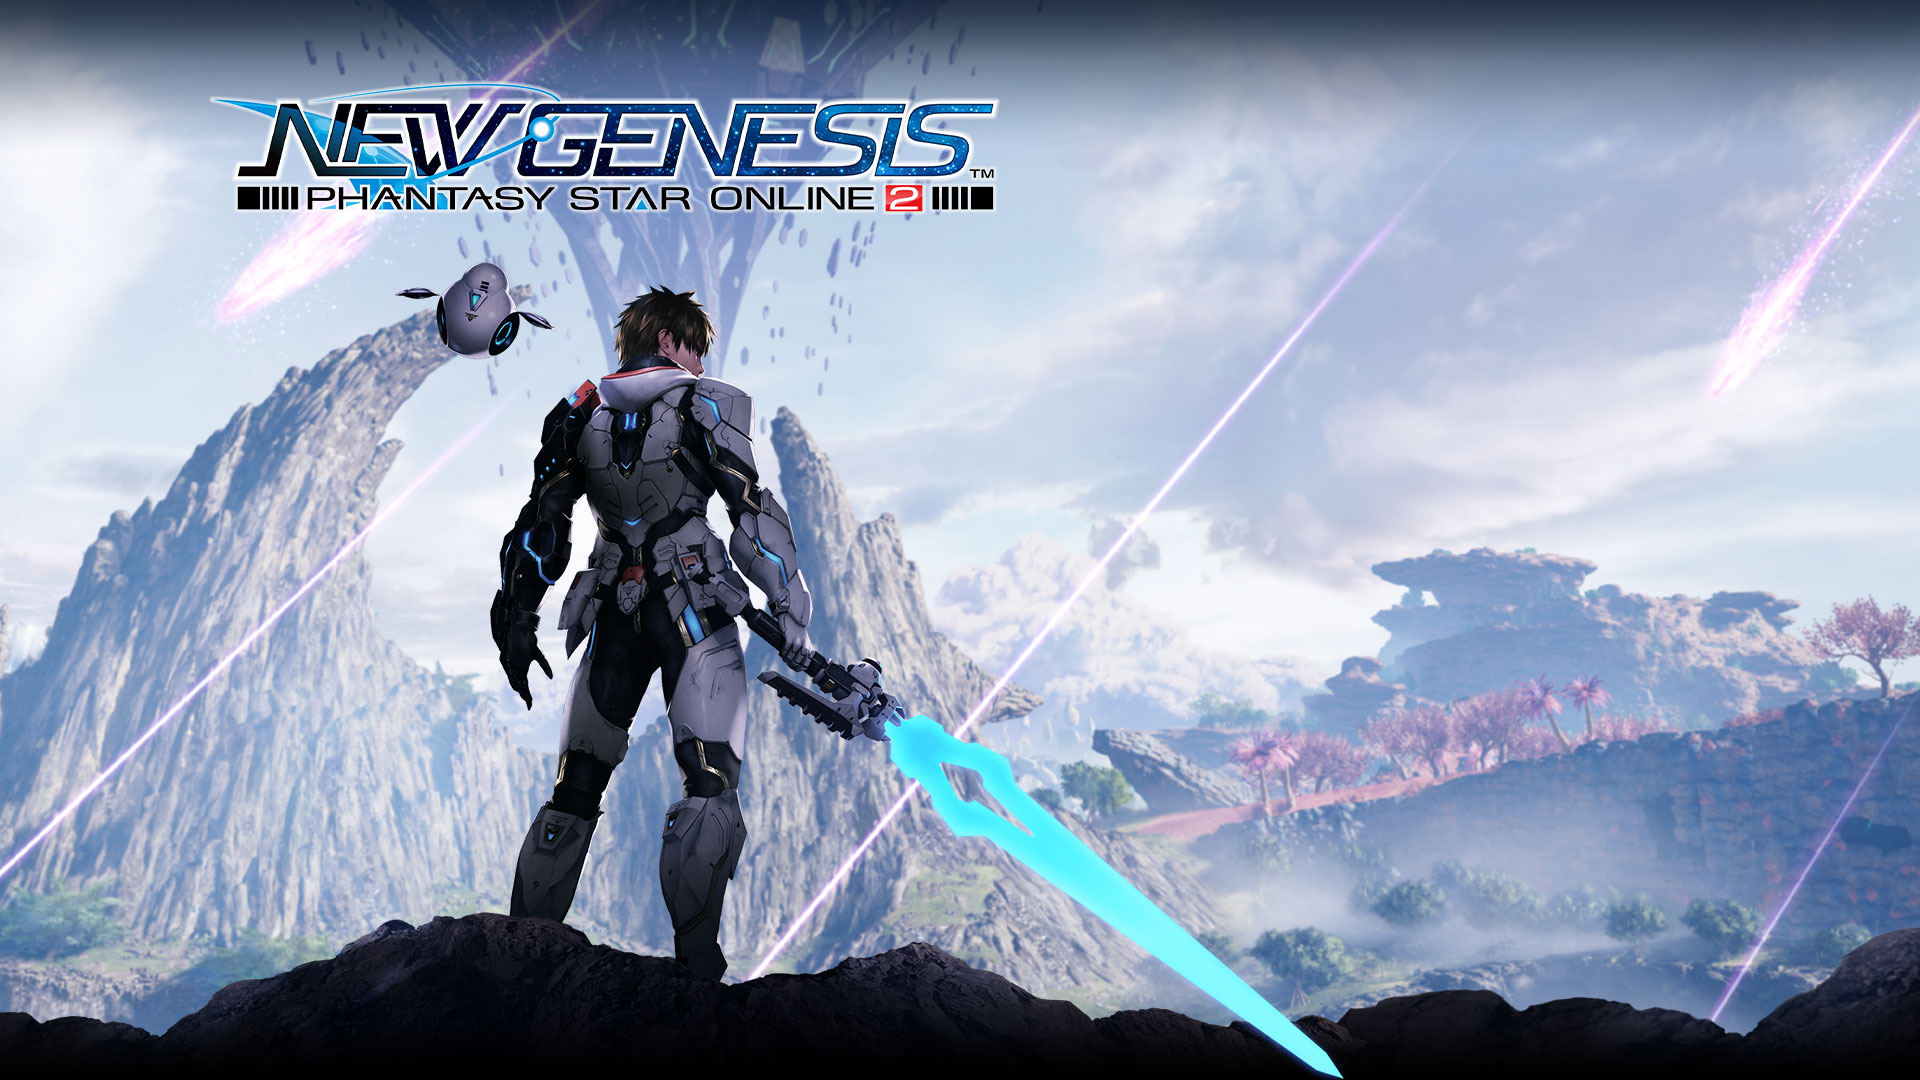 Phantasy Star Online 2 New Genesis logo, character holding a blue sword with a drone overlooking a valley